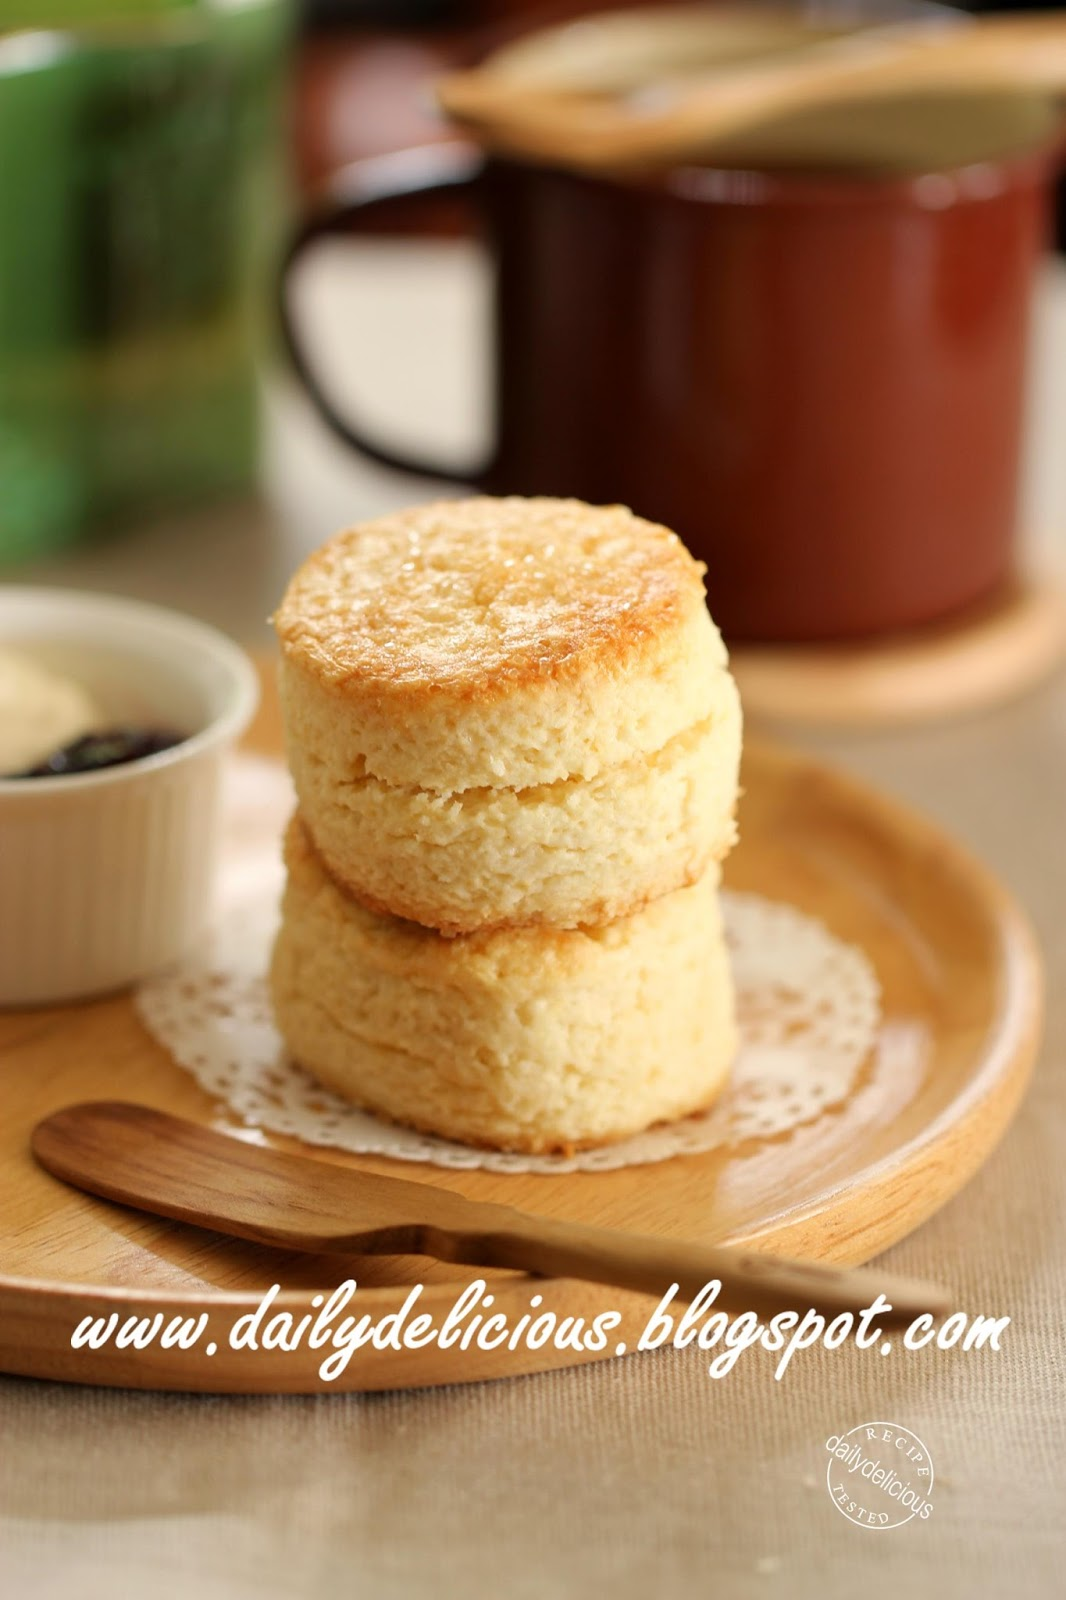 dailydelicious: Your daily bake: Simple cream biscuits